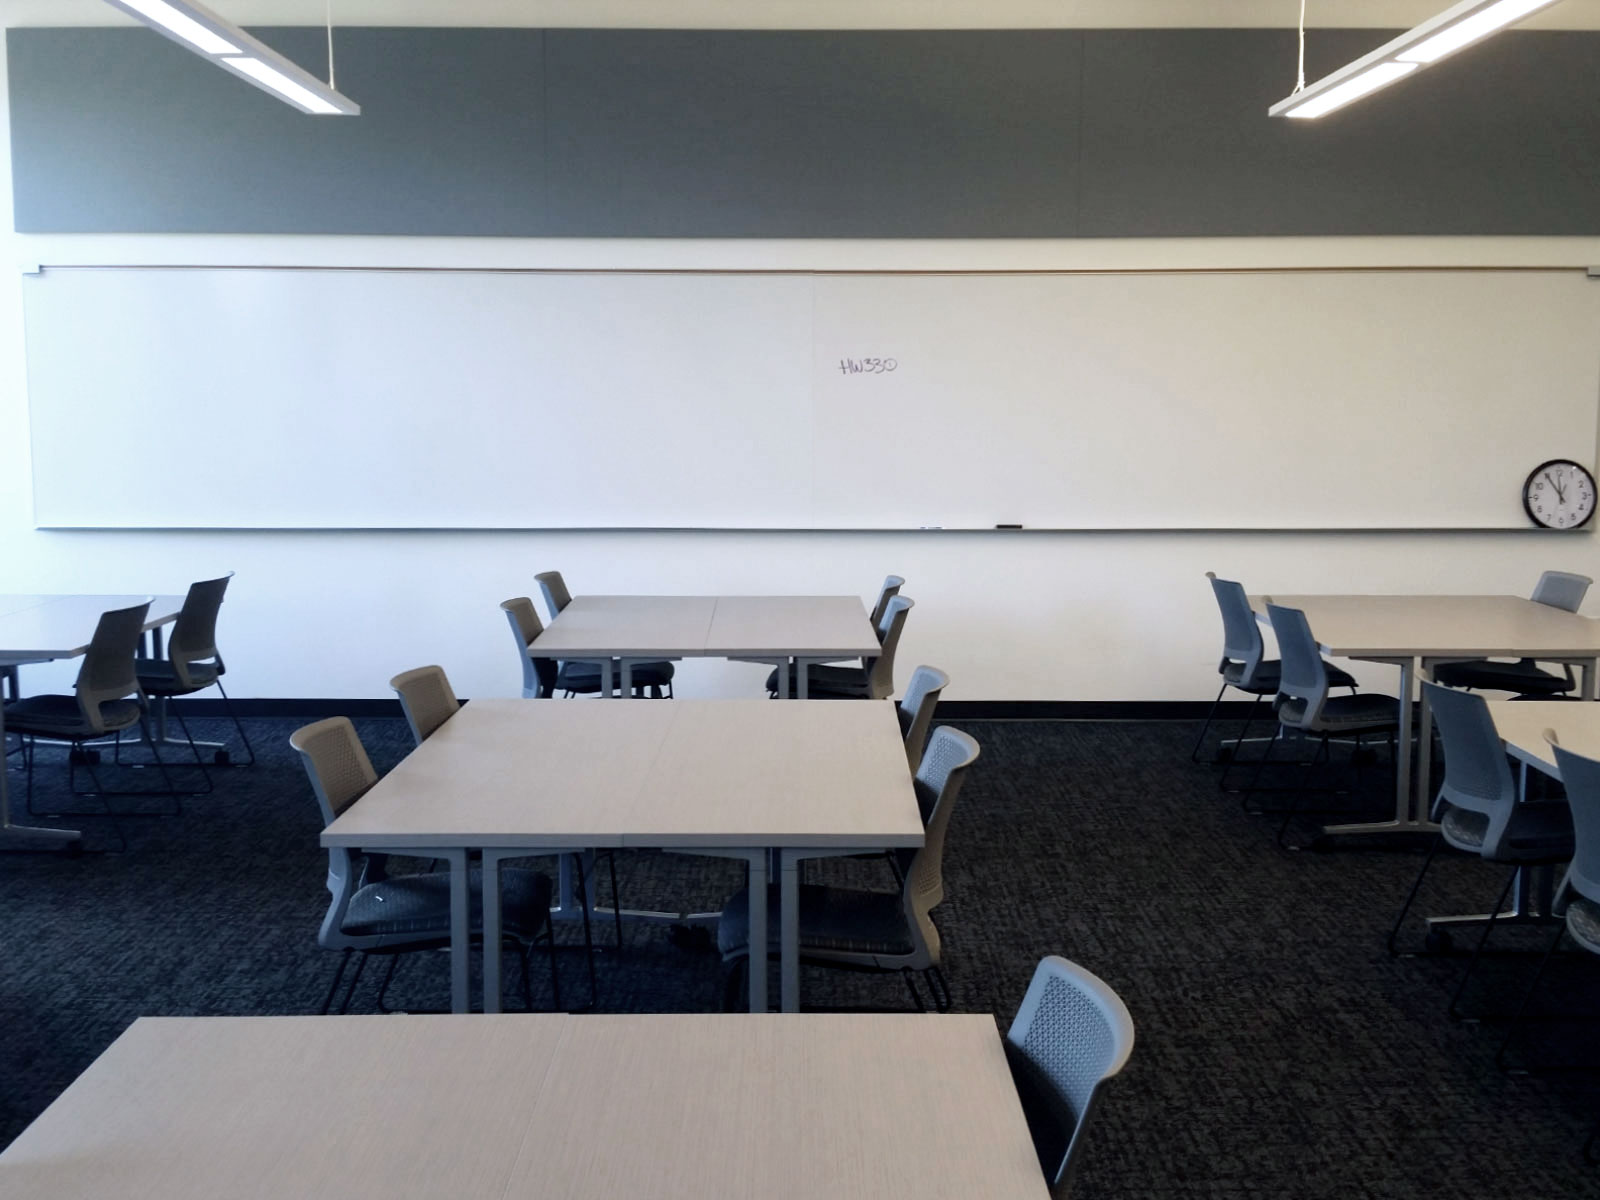 Chairs, tables and whiteboard in Harmony Campus classroom